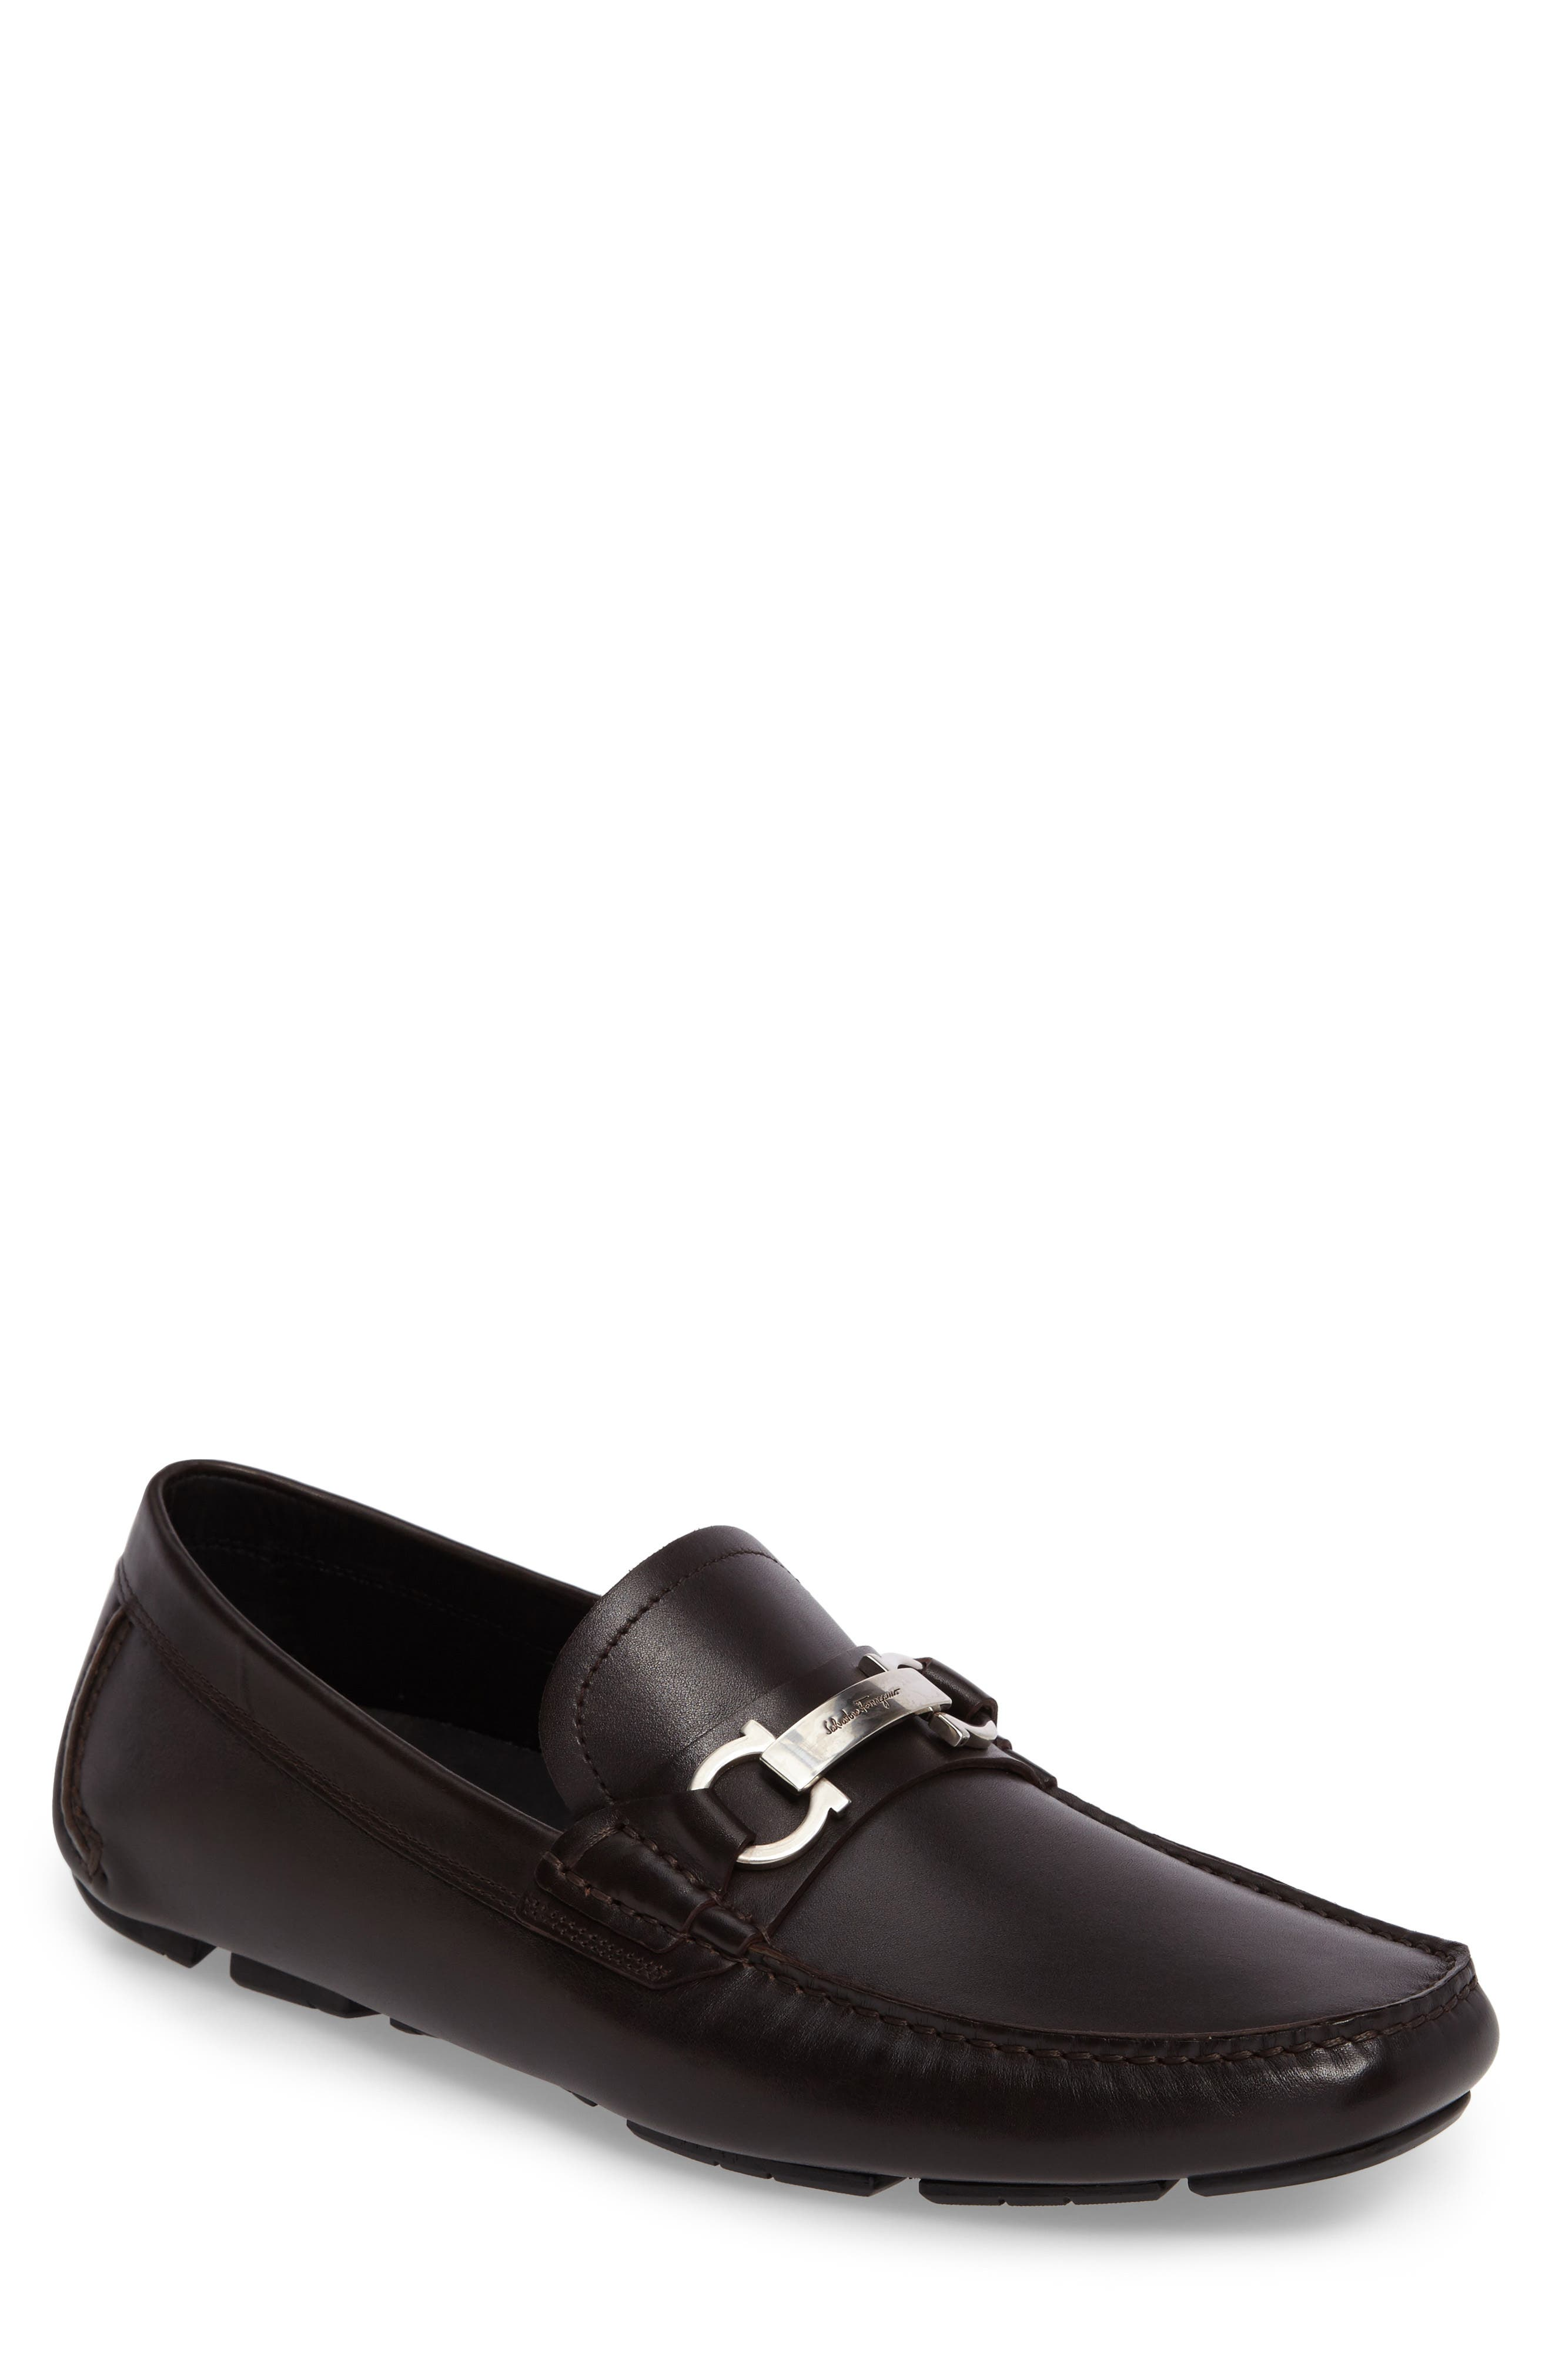 Driving Shoe,                             Main thumbnail 1, color,                             Hickory Leather